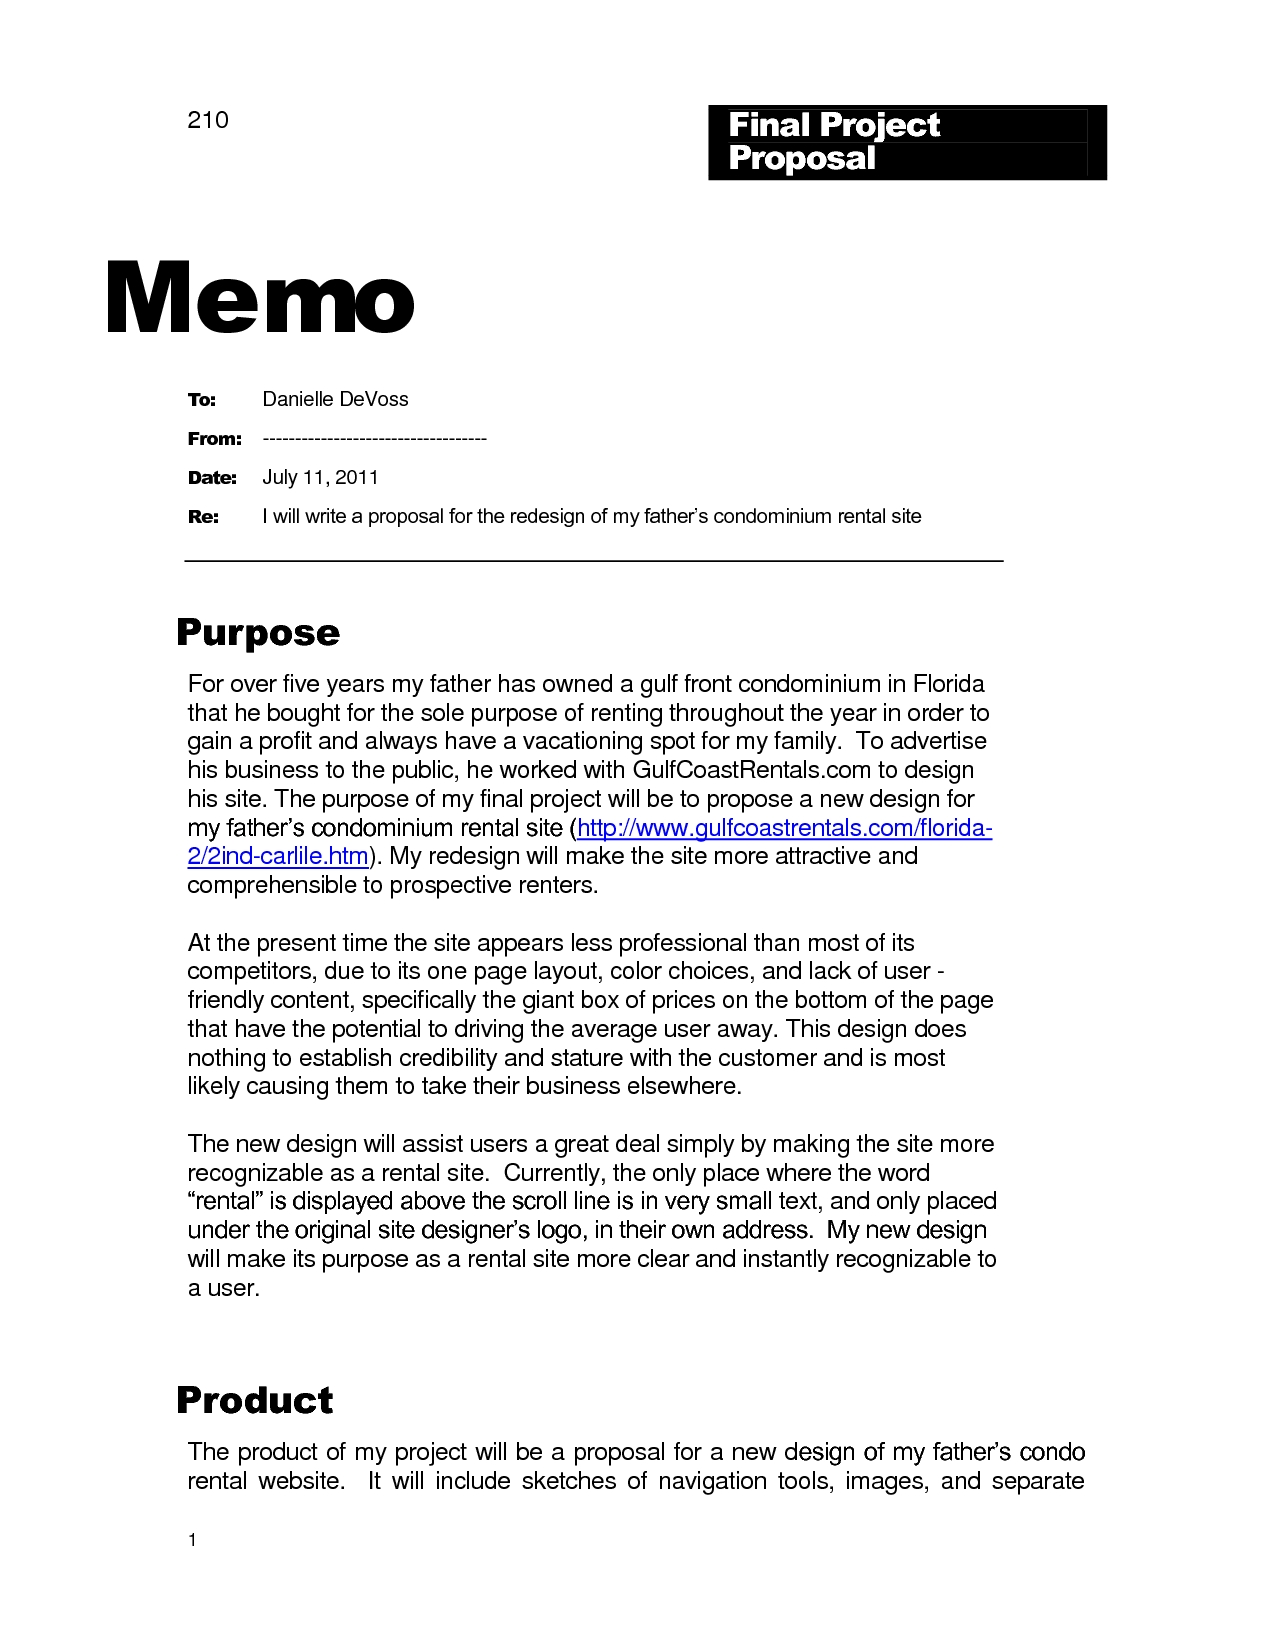 Sample Memo to Customers